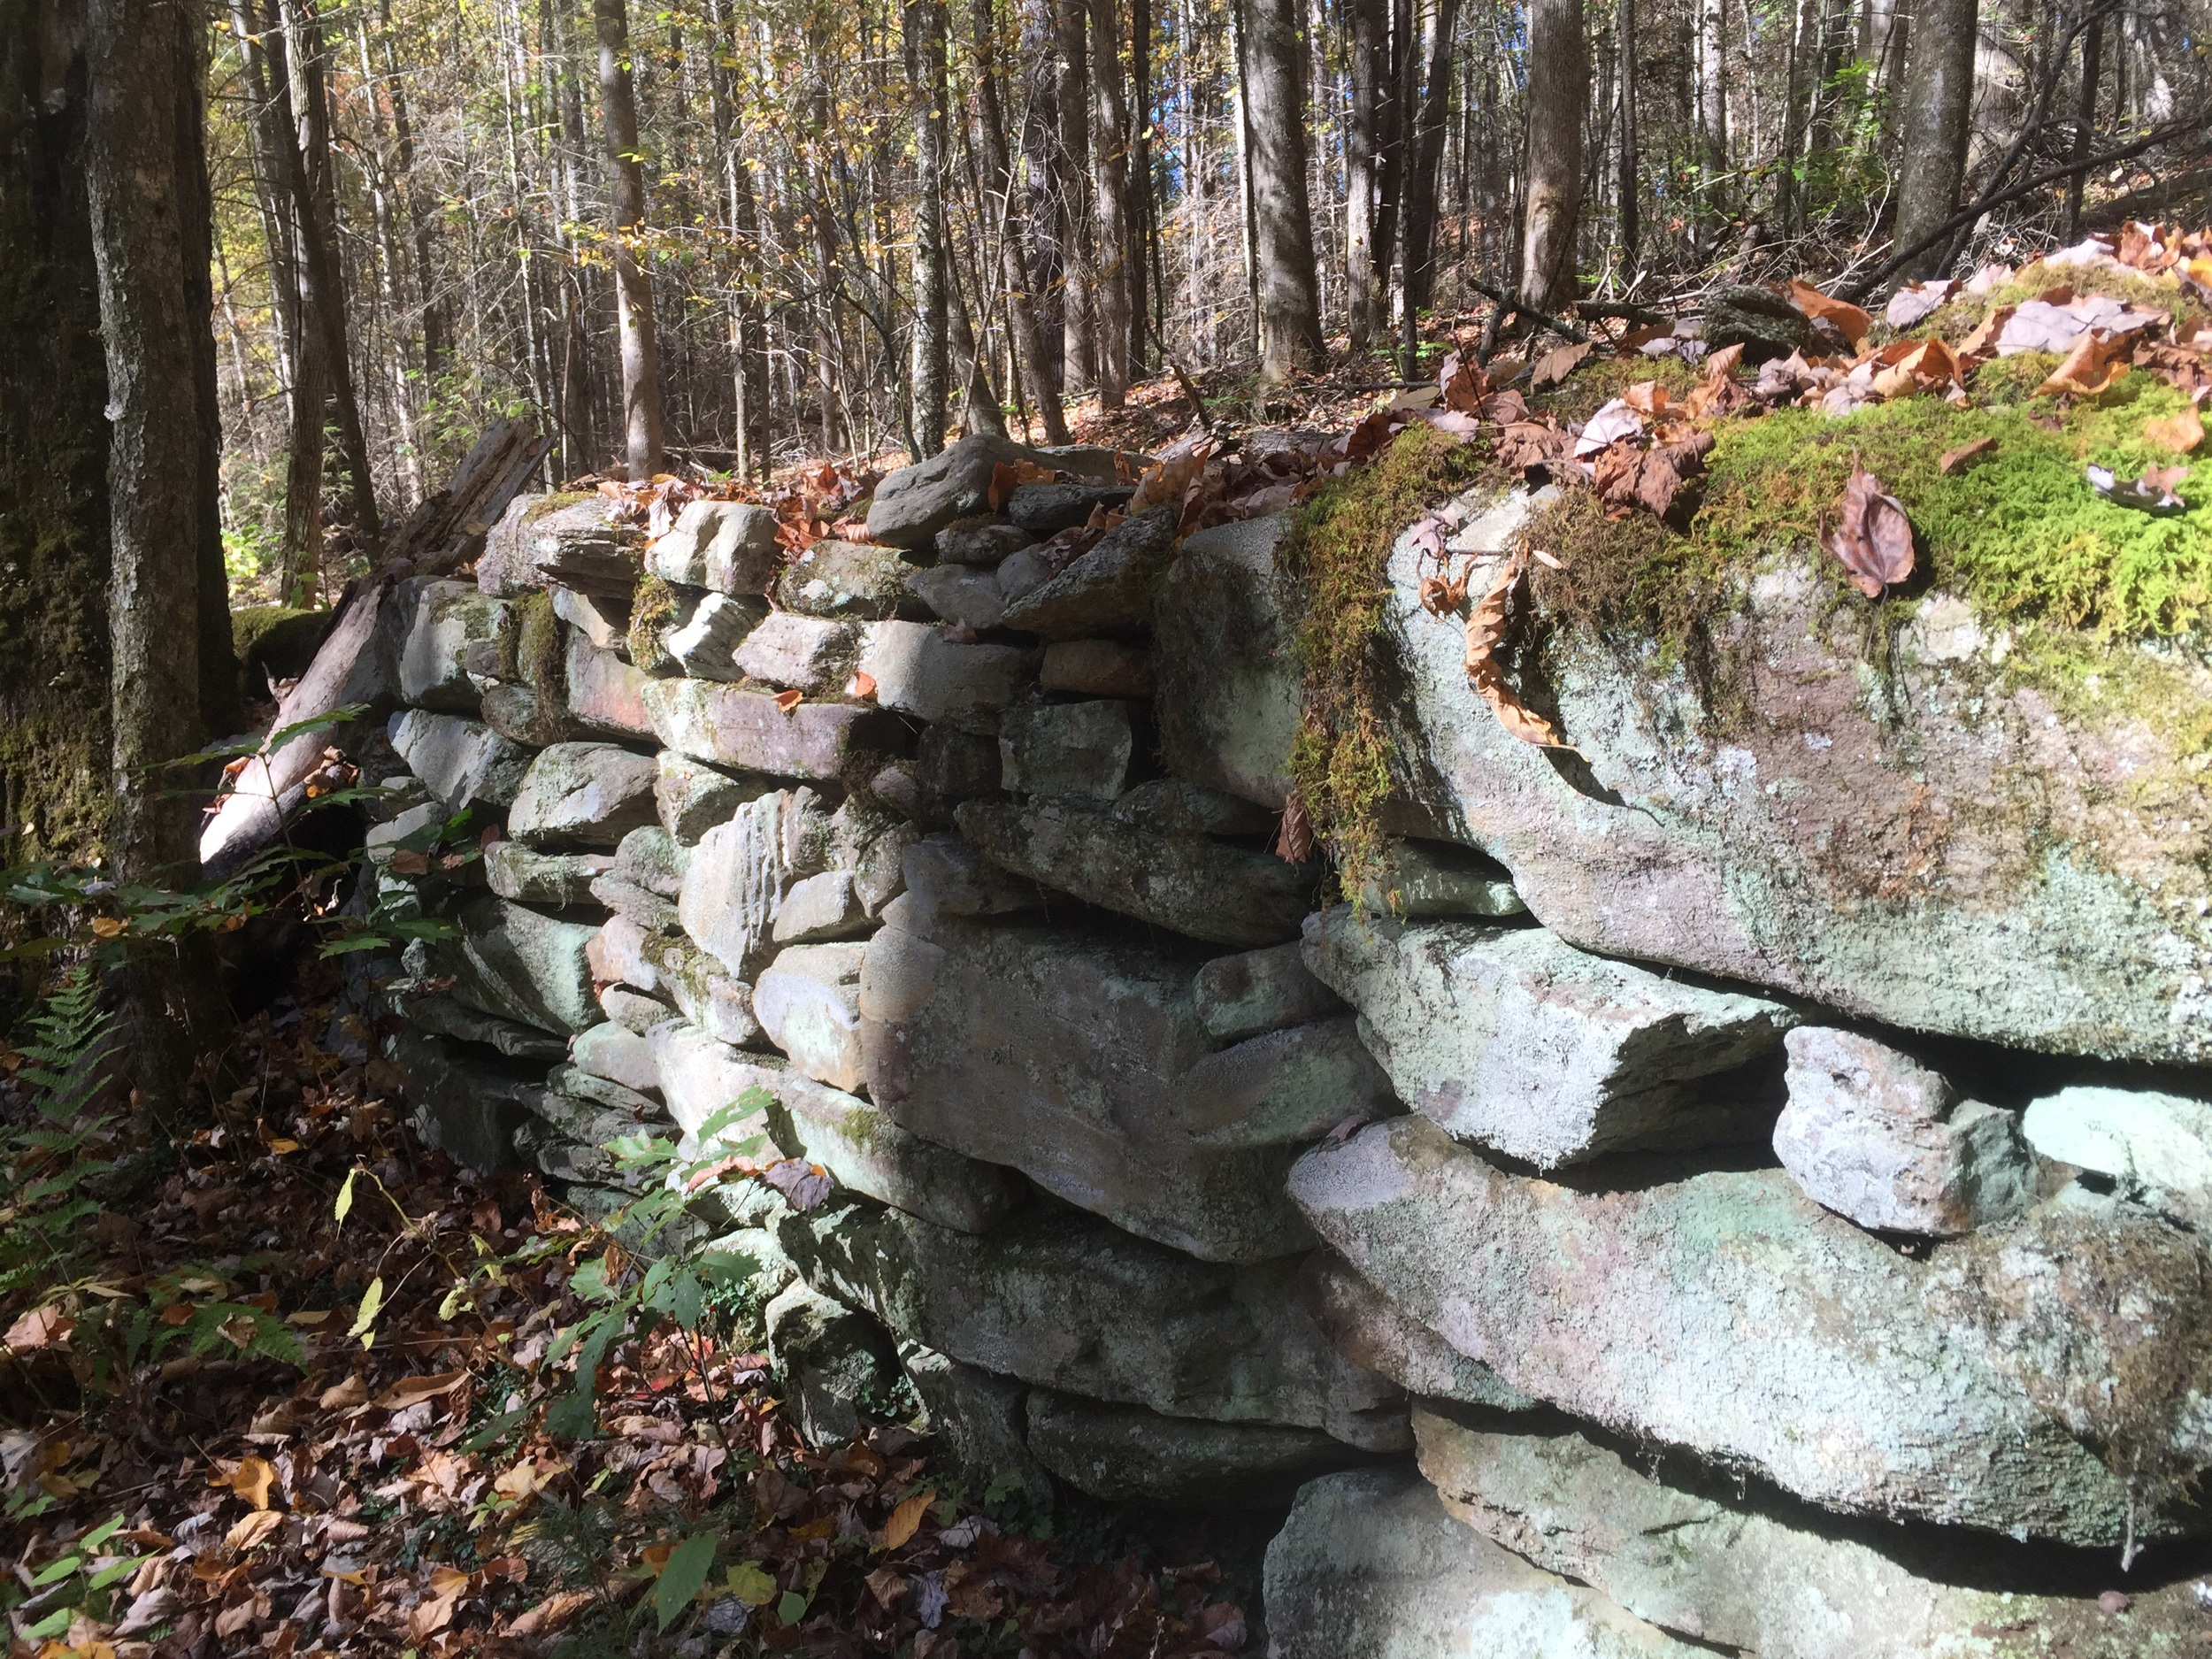 A stone wall on the Boogerman Loop hike.